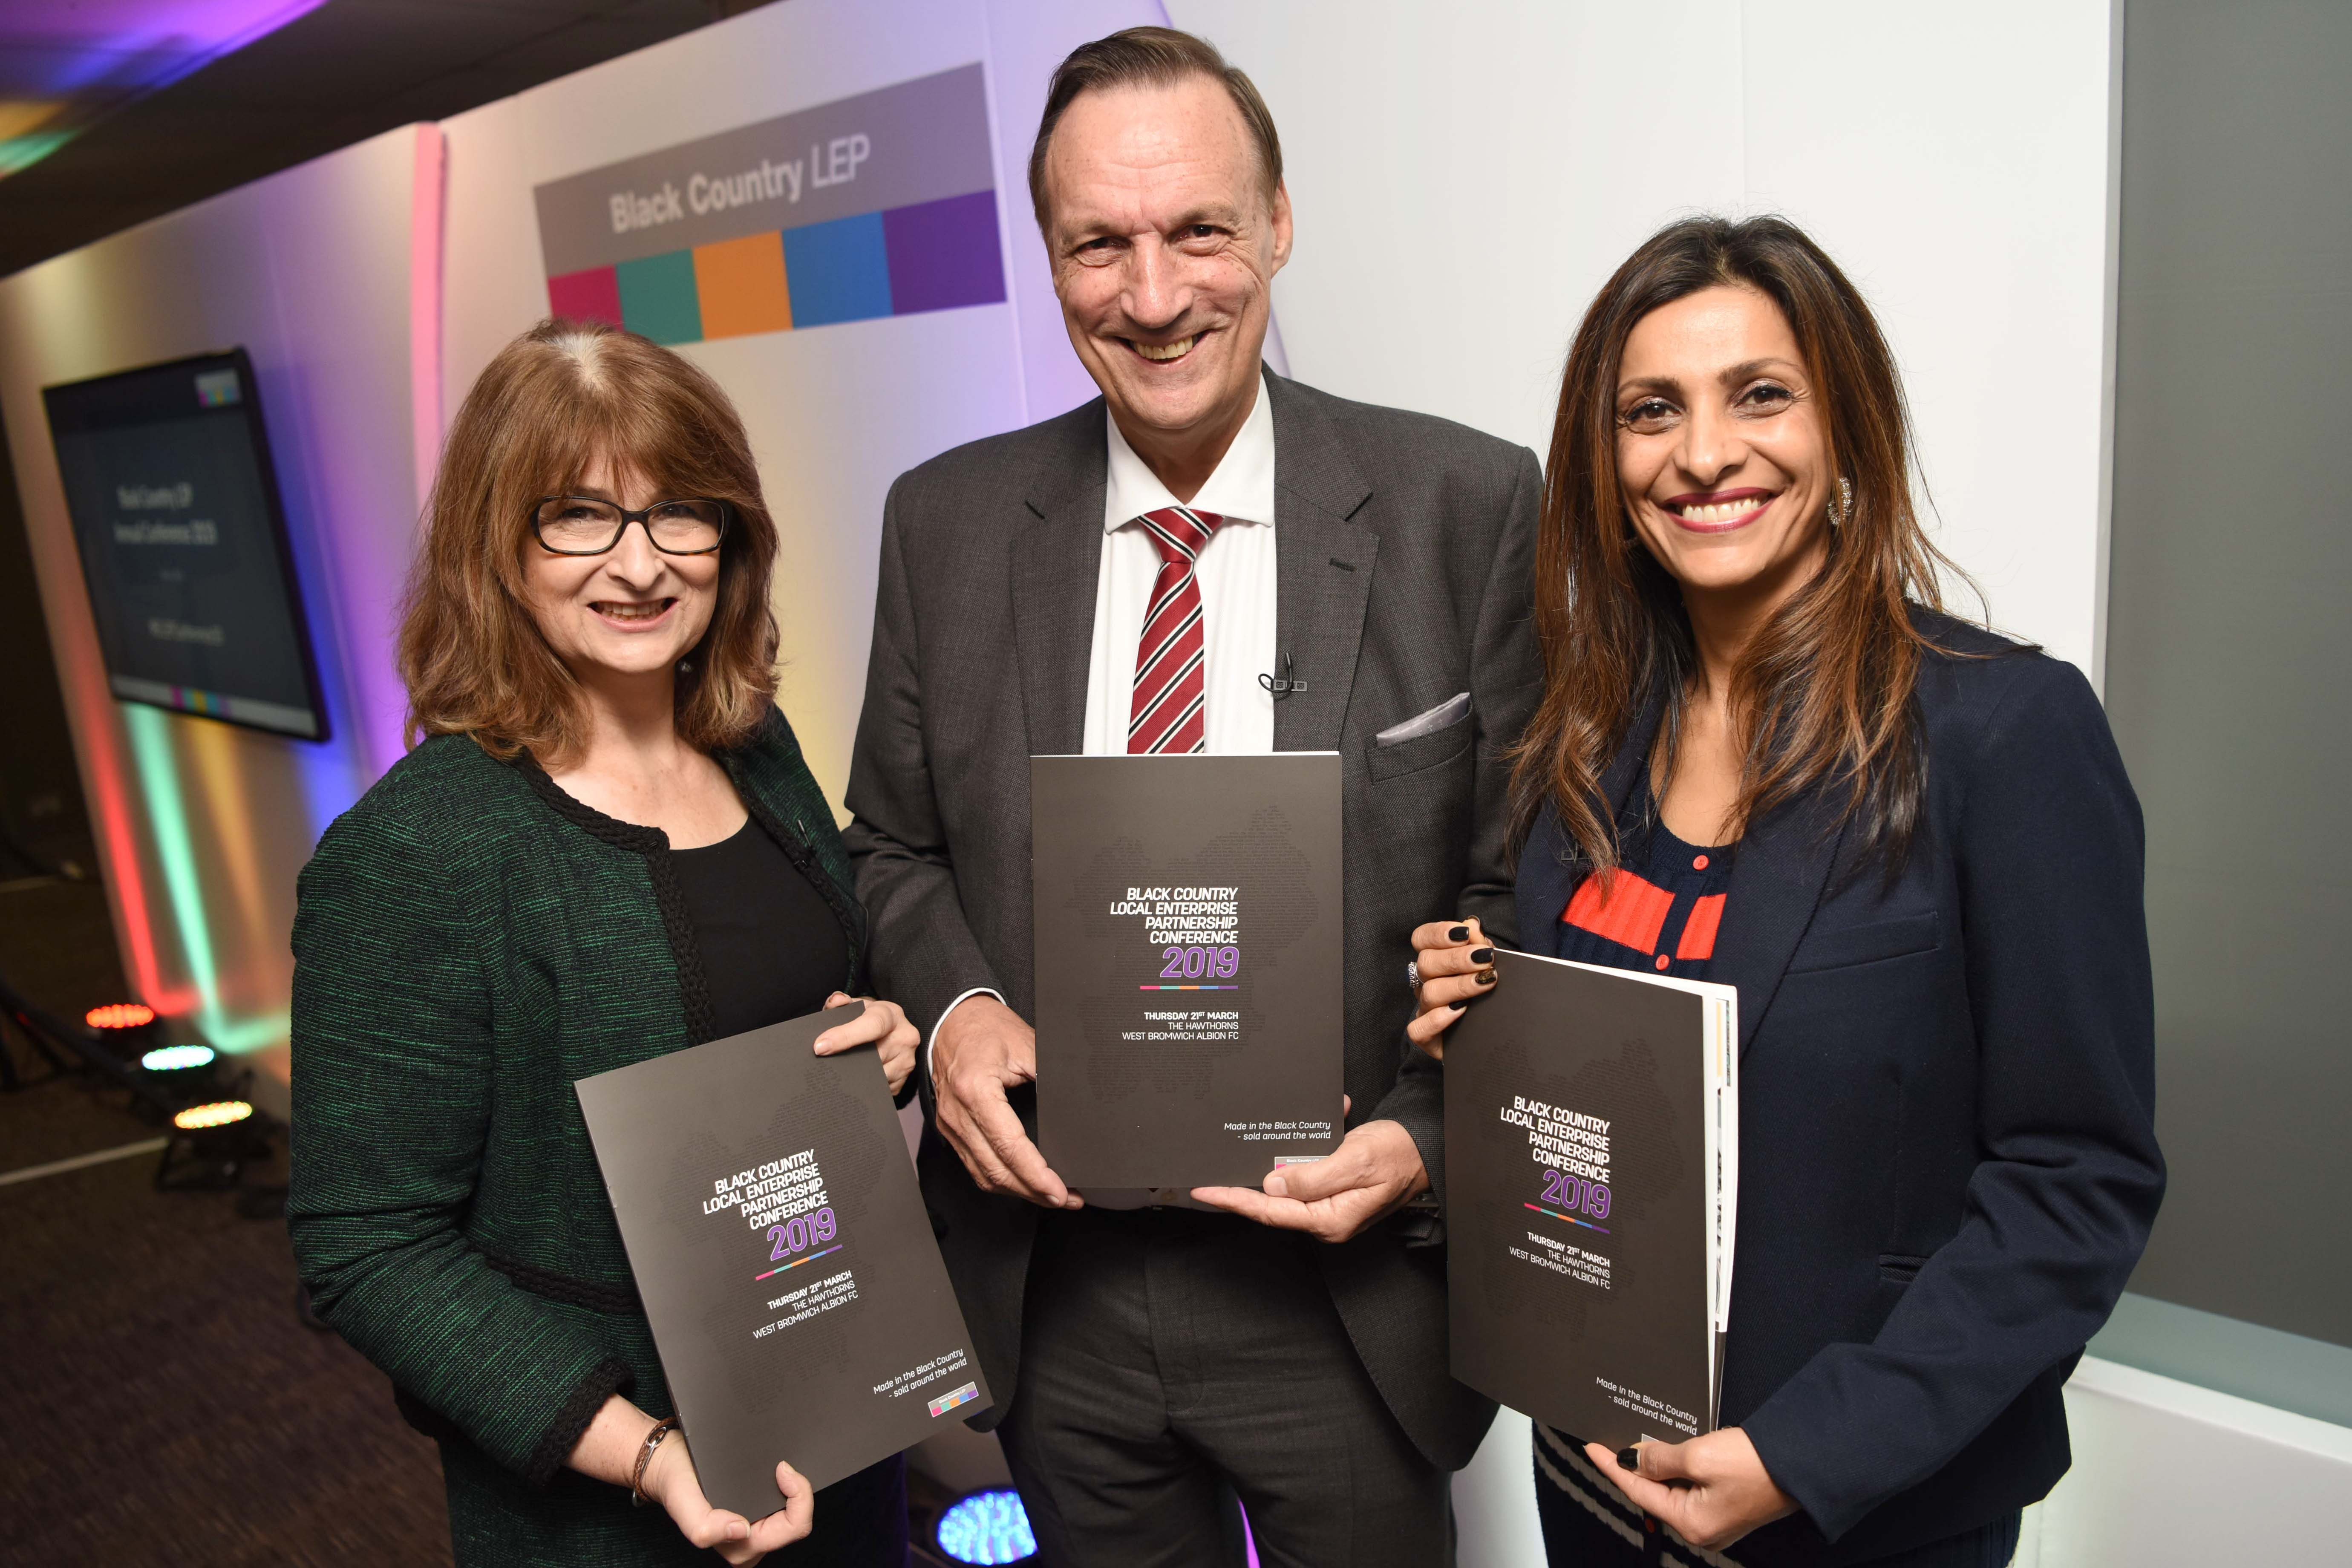 Annual Black Country LEP Conference celebrates continued economic success